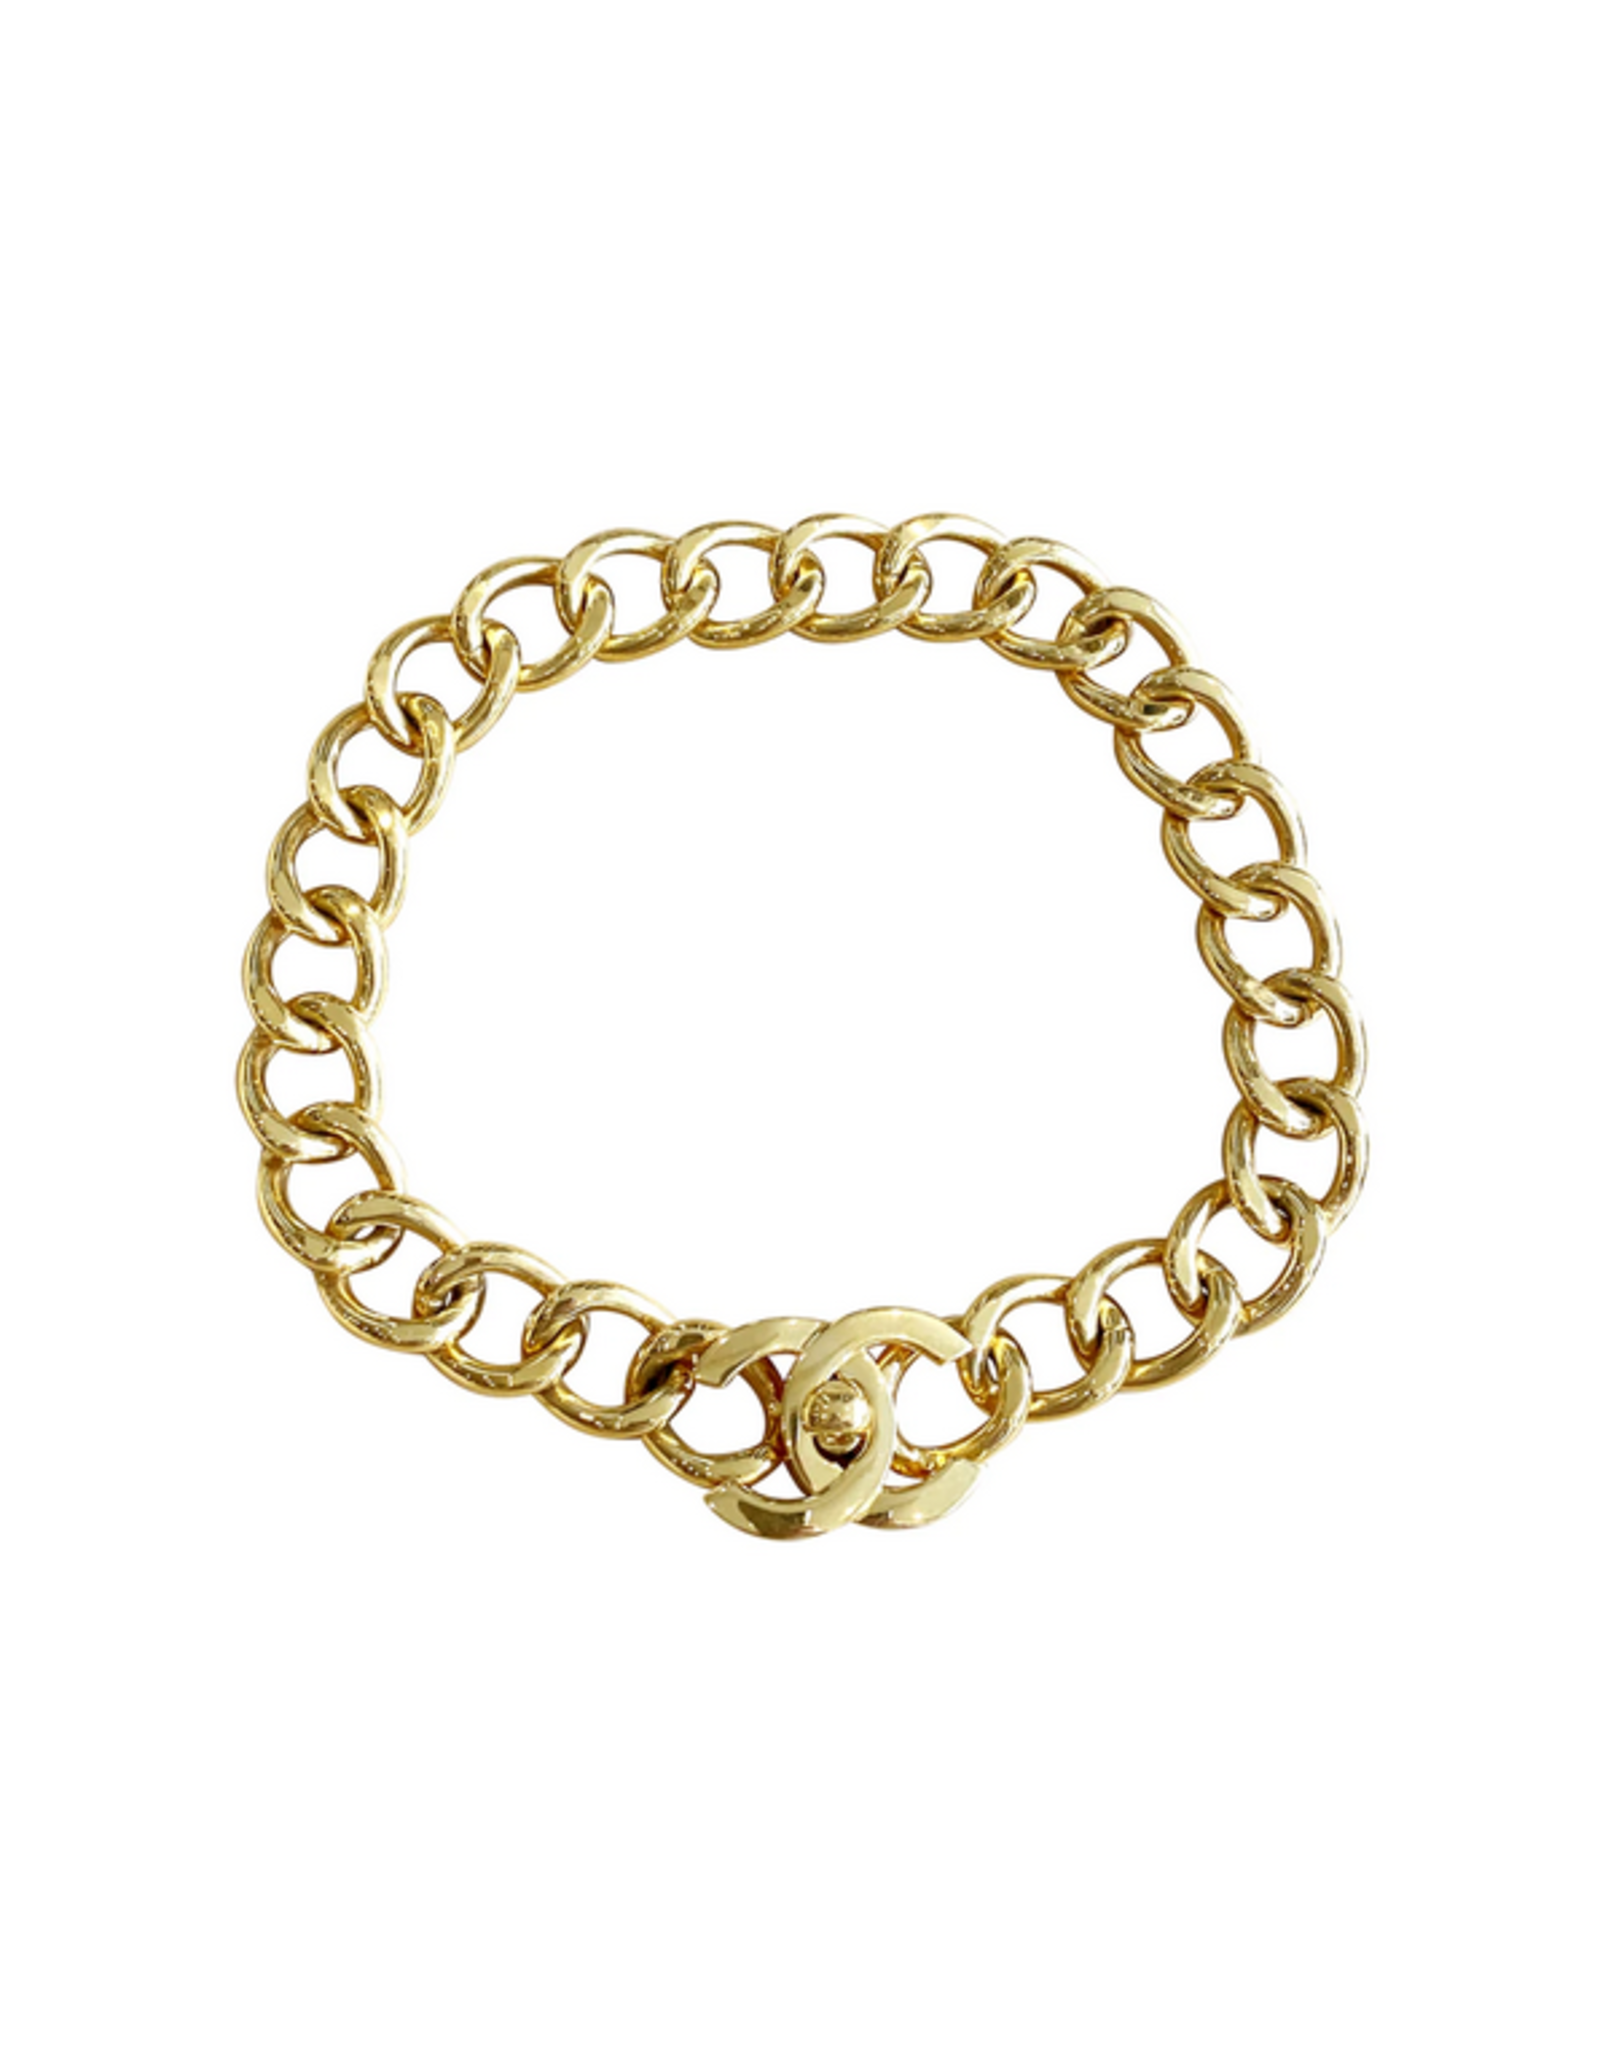 Chanel Chanel Turnlock Gold Chain Necklace (1995 Vintage)